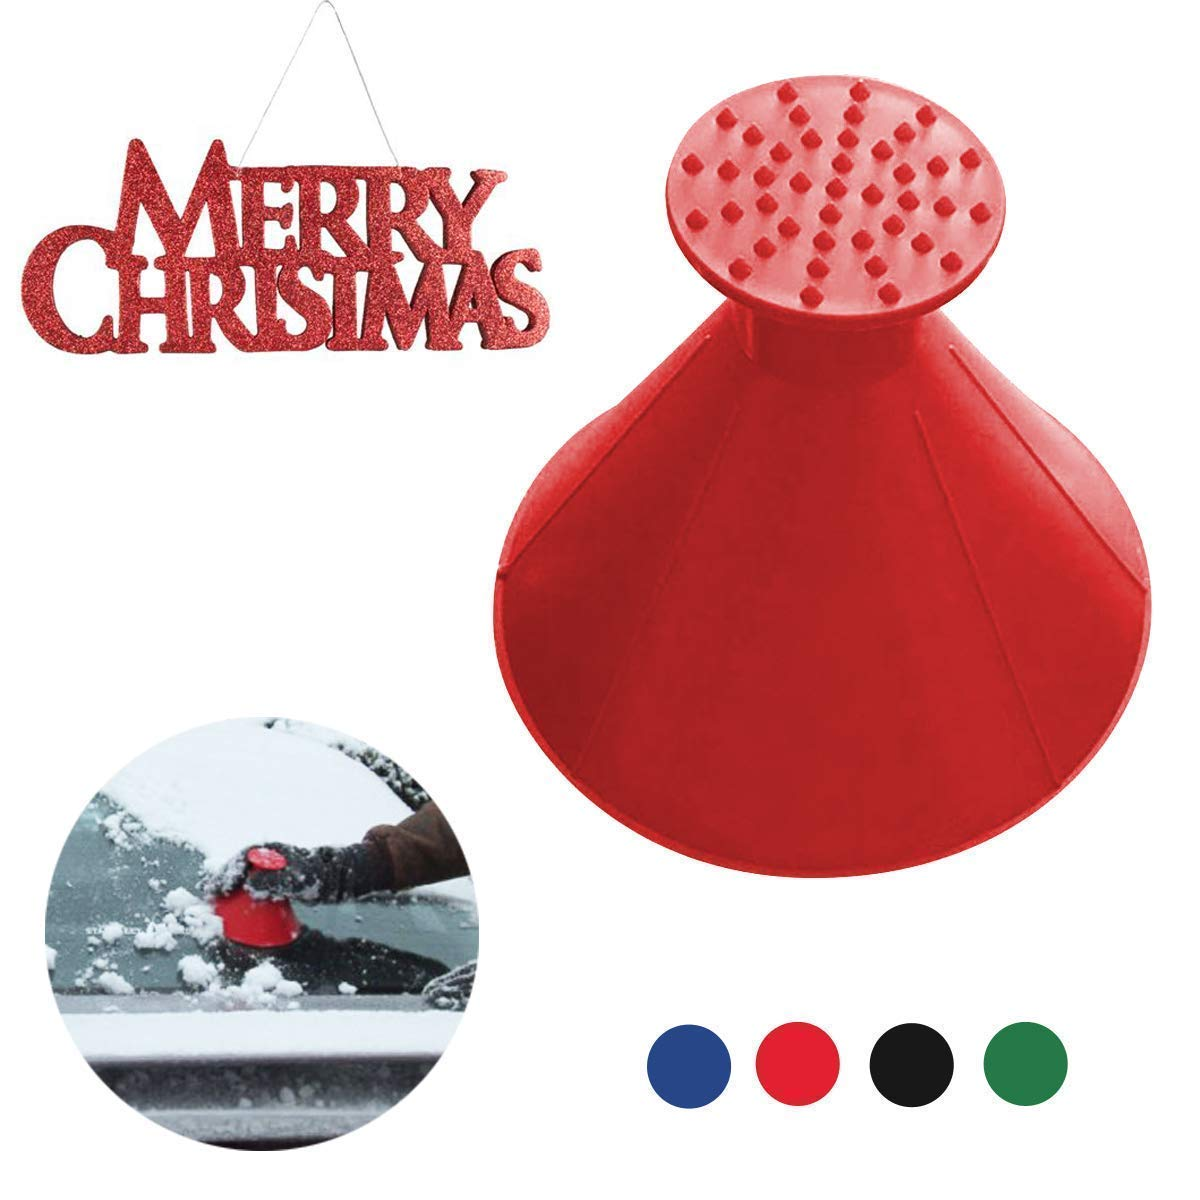 Magic Scrape A Round Ice Scraper Car Windshield Snow Scraper Cone Shaped Windshield Snow Funnel Shovel Tool Will Scrape Pesky Frost and Ice from Windscreens and Side Windows with Ease (Red) Great Home